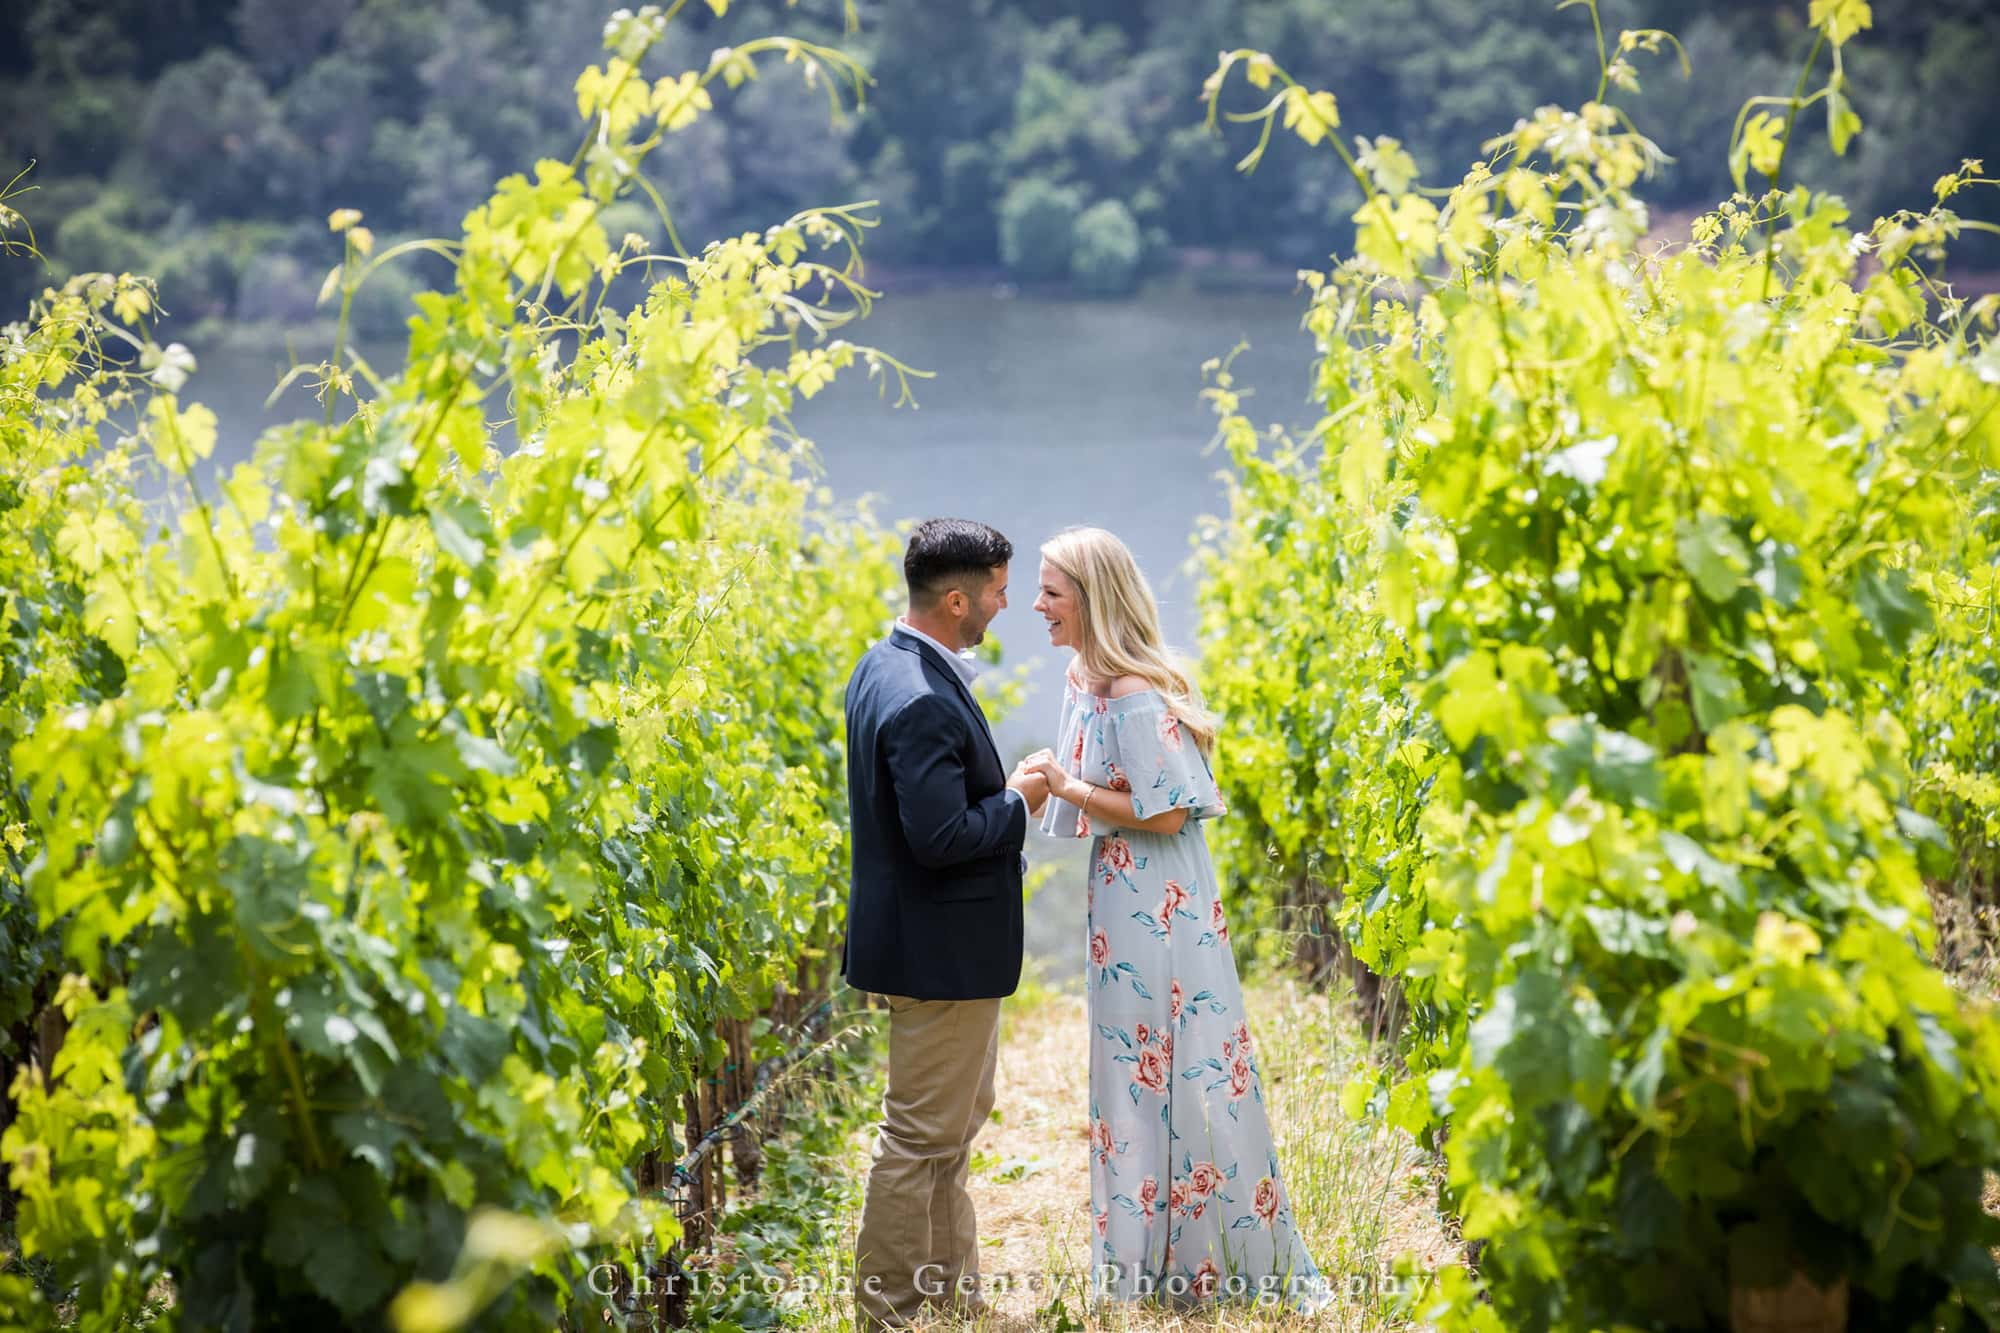 Marriage Proposal Photography in Napa -1006